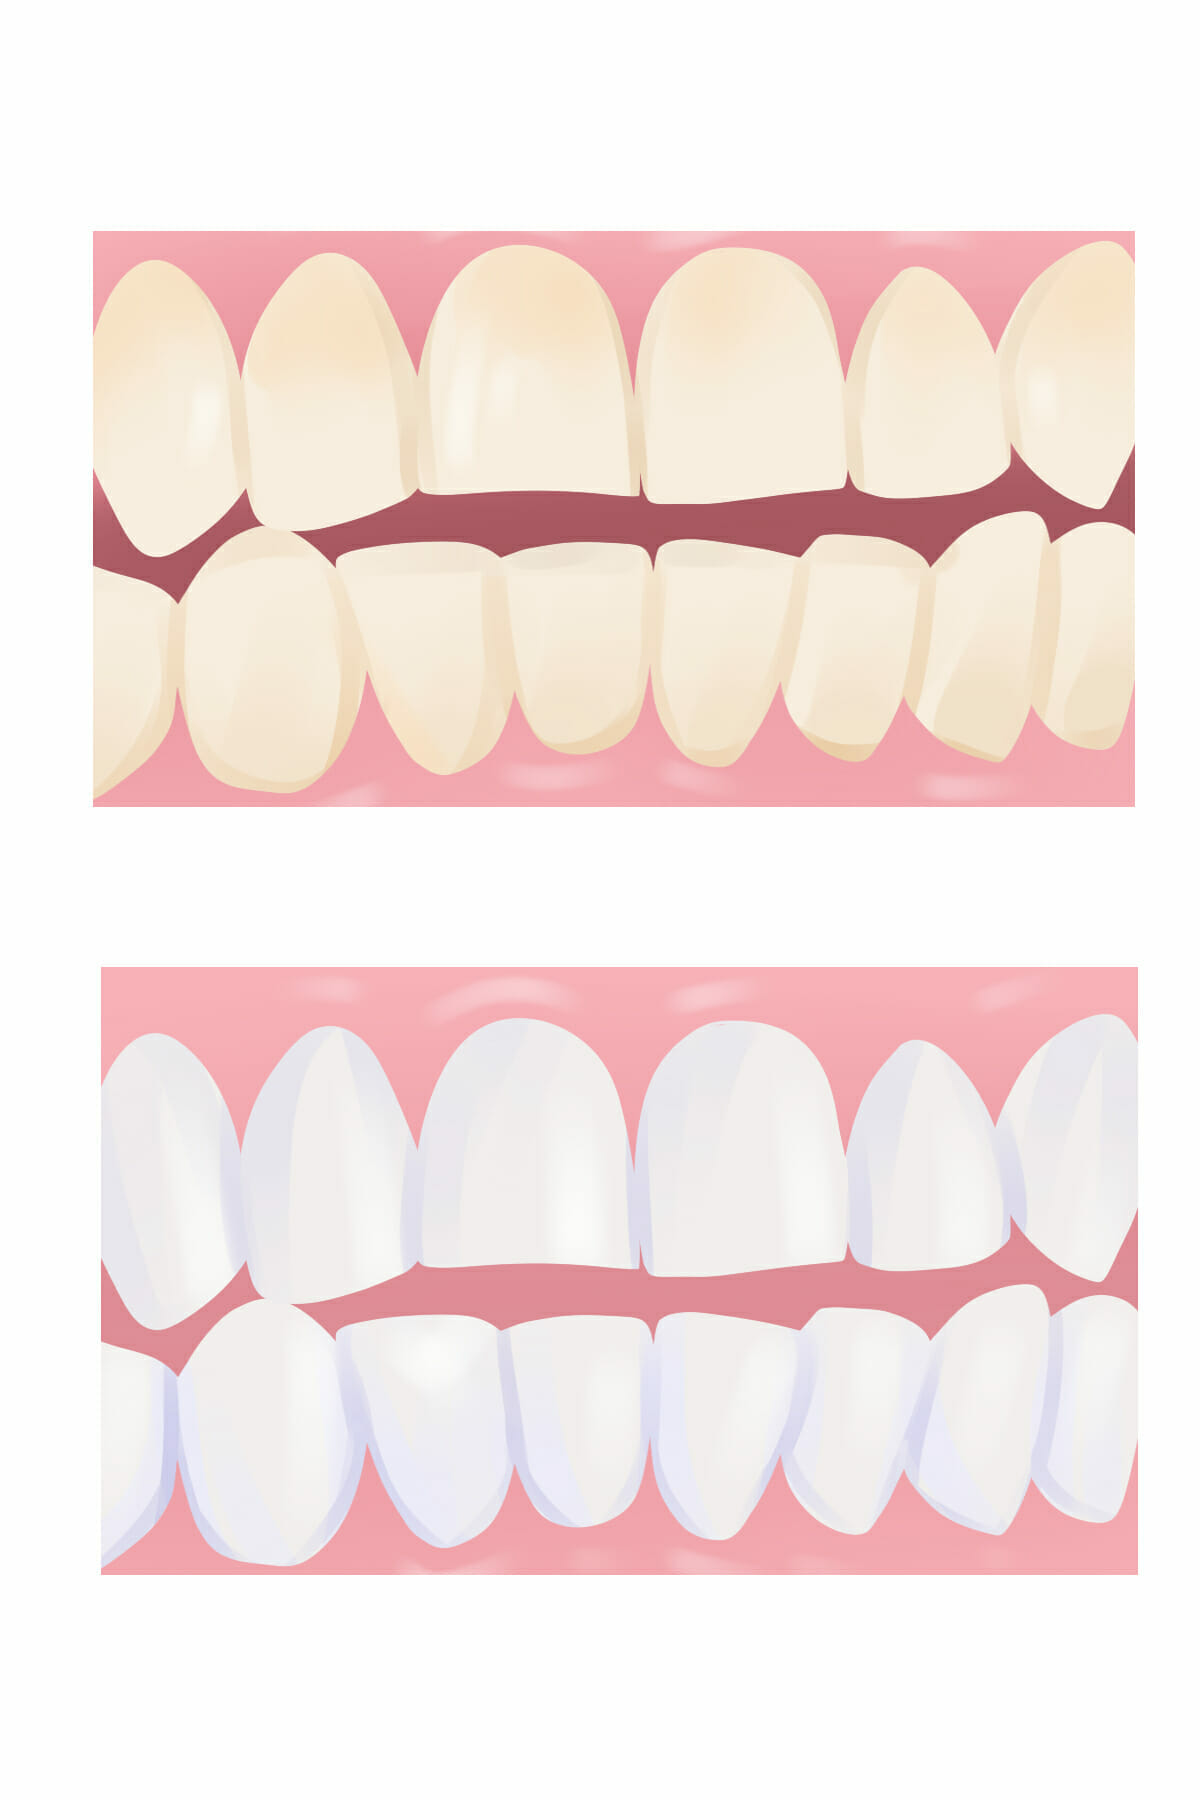 Does Whitening Your Teeth Actually Work?